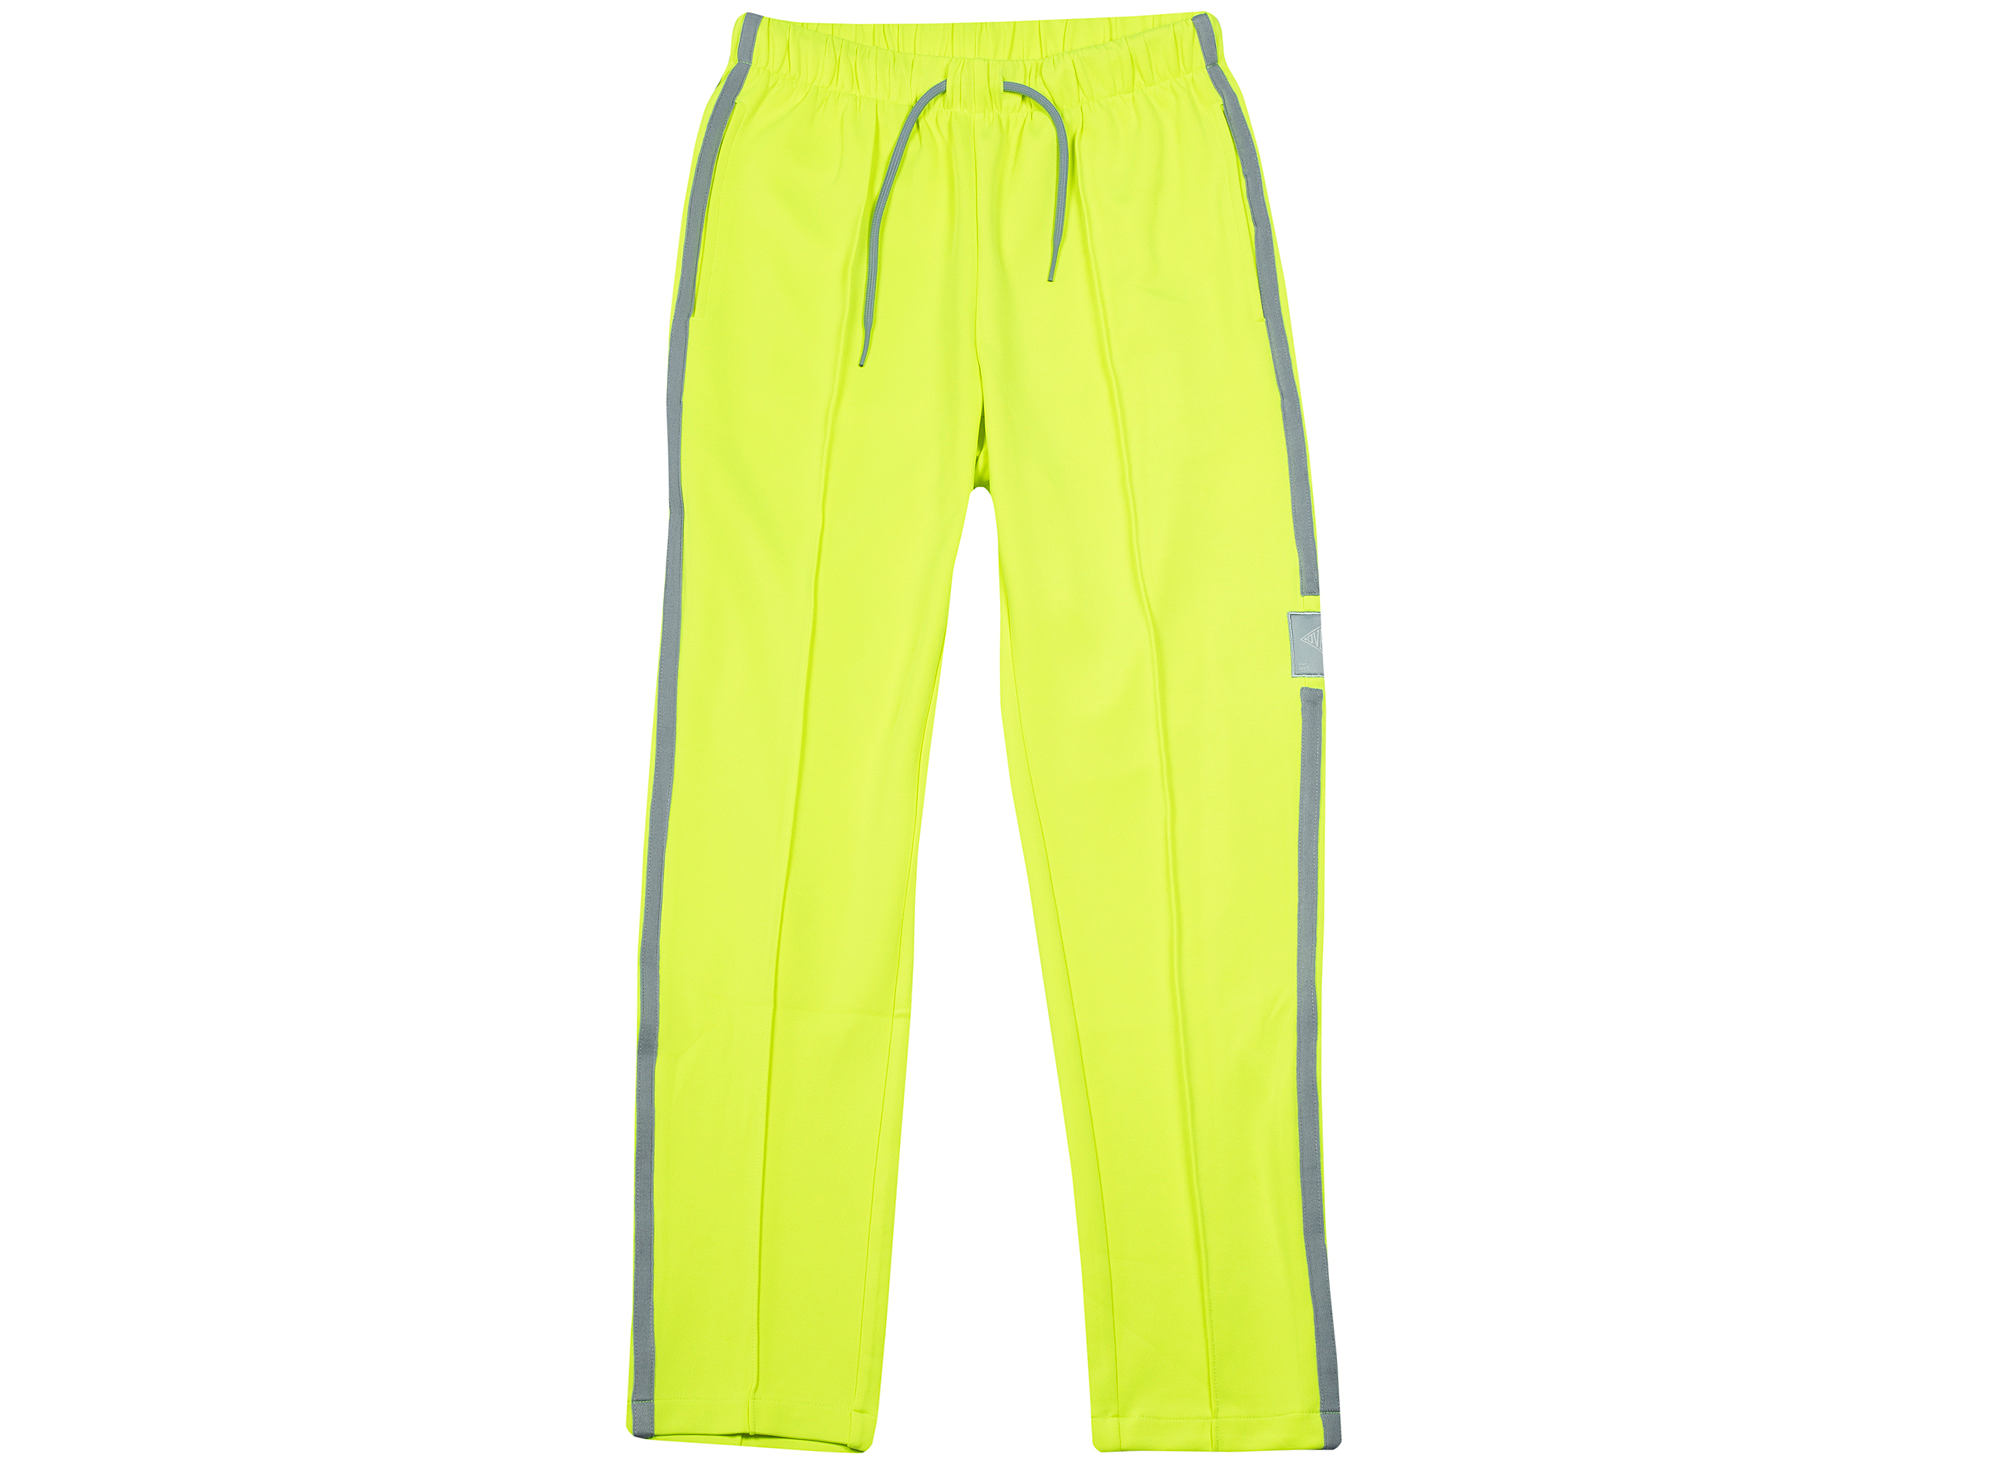 Ovadia and Sons Ball Track Pants in Safety Yellow